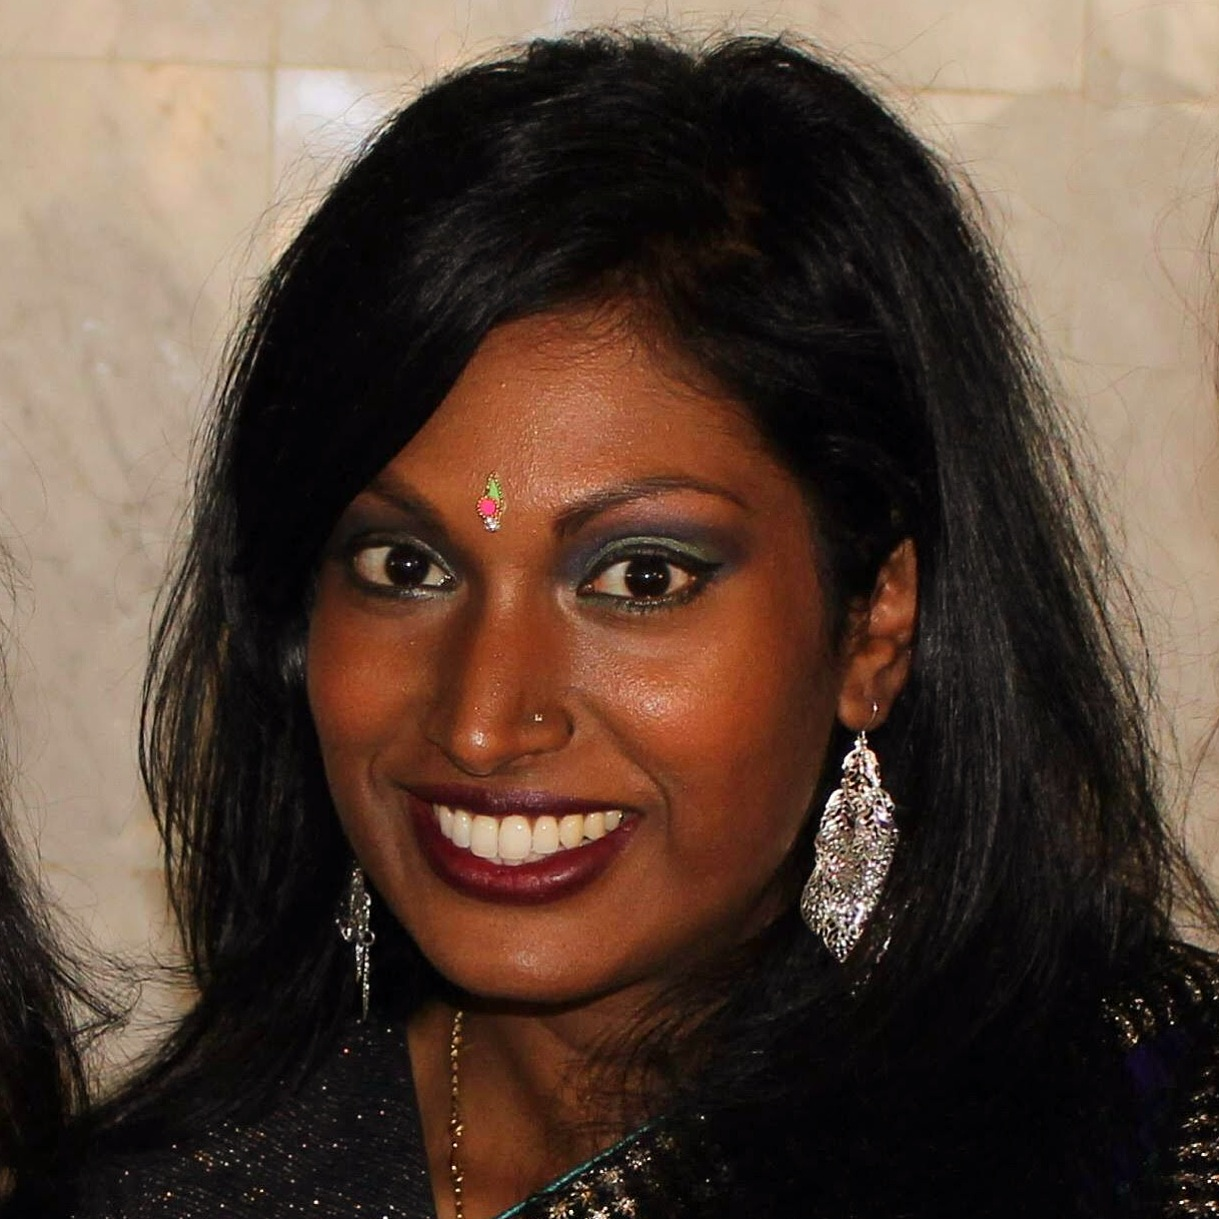 Discussion On South Asian Women 33